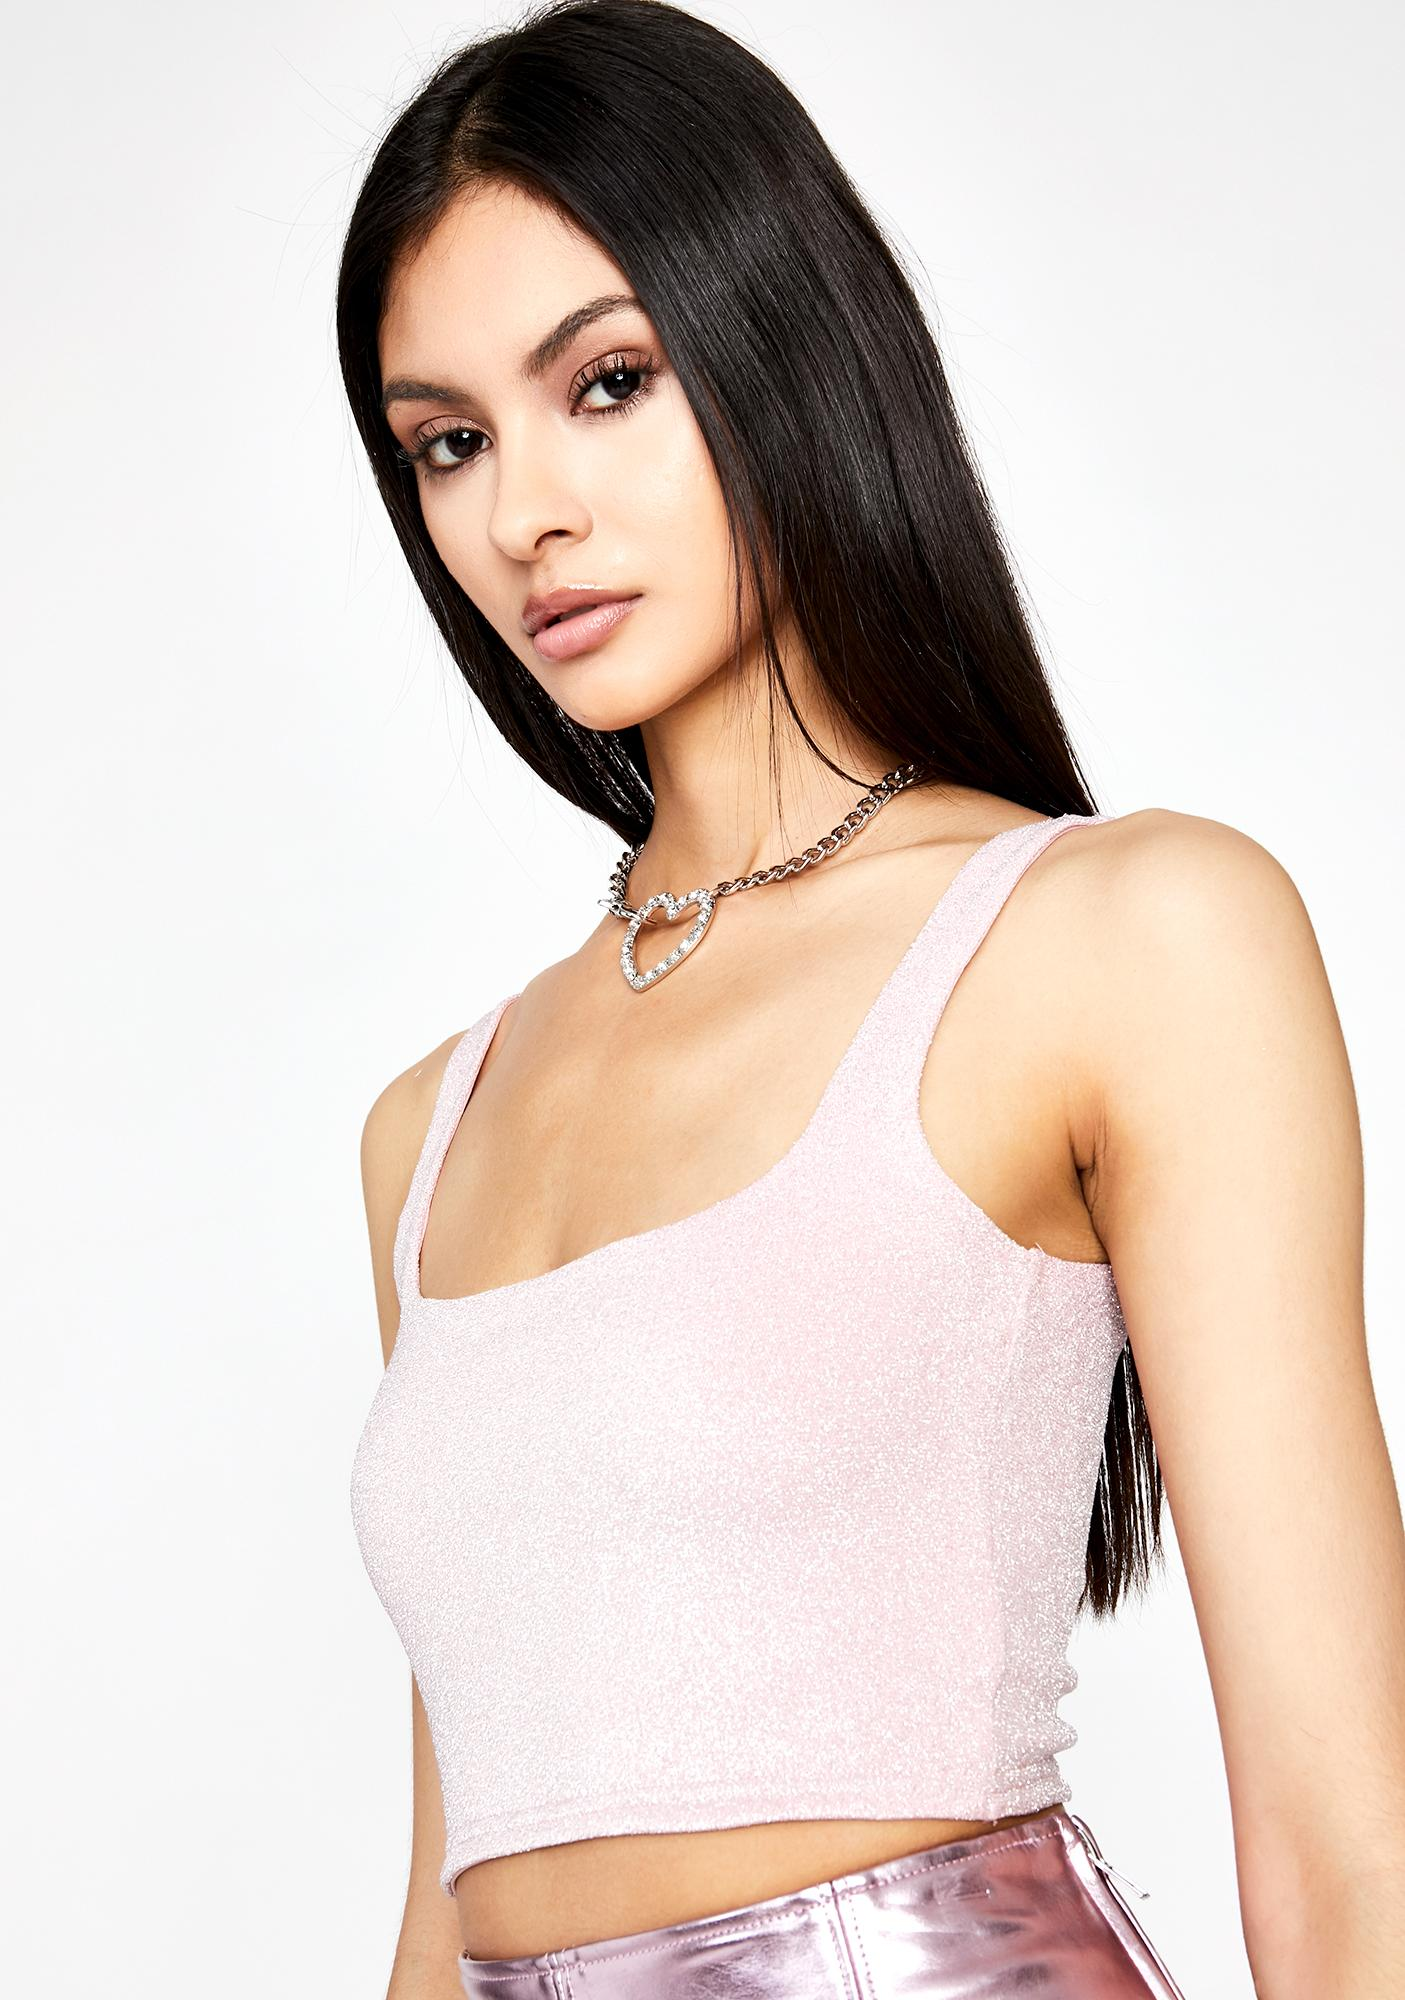 Credit Card Debt Metallic Crop Top